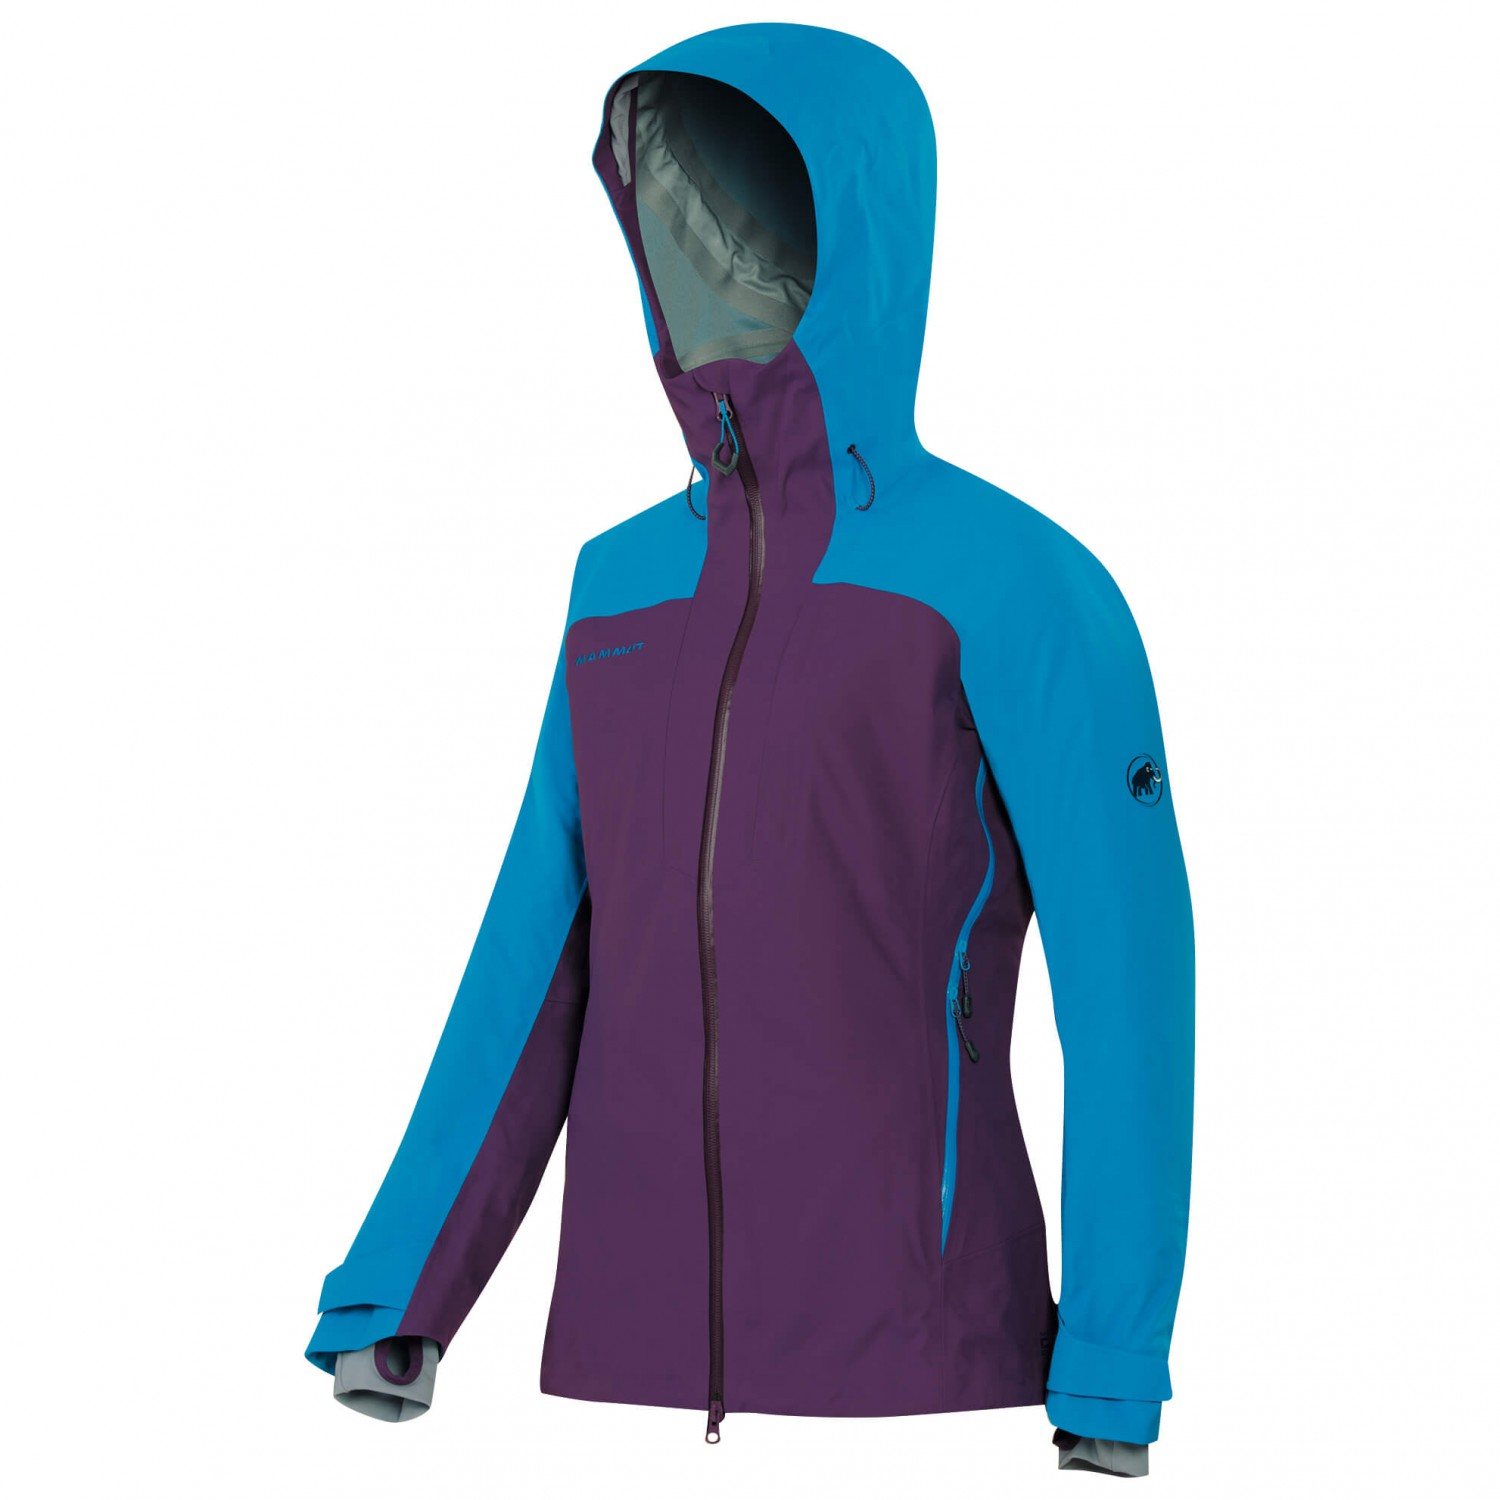 reputable site 6b3c3 2fbcd Mammut Luina Tour HS Hooded Jacket - Skijacke Damen online ...